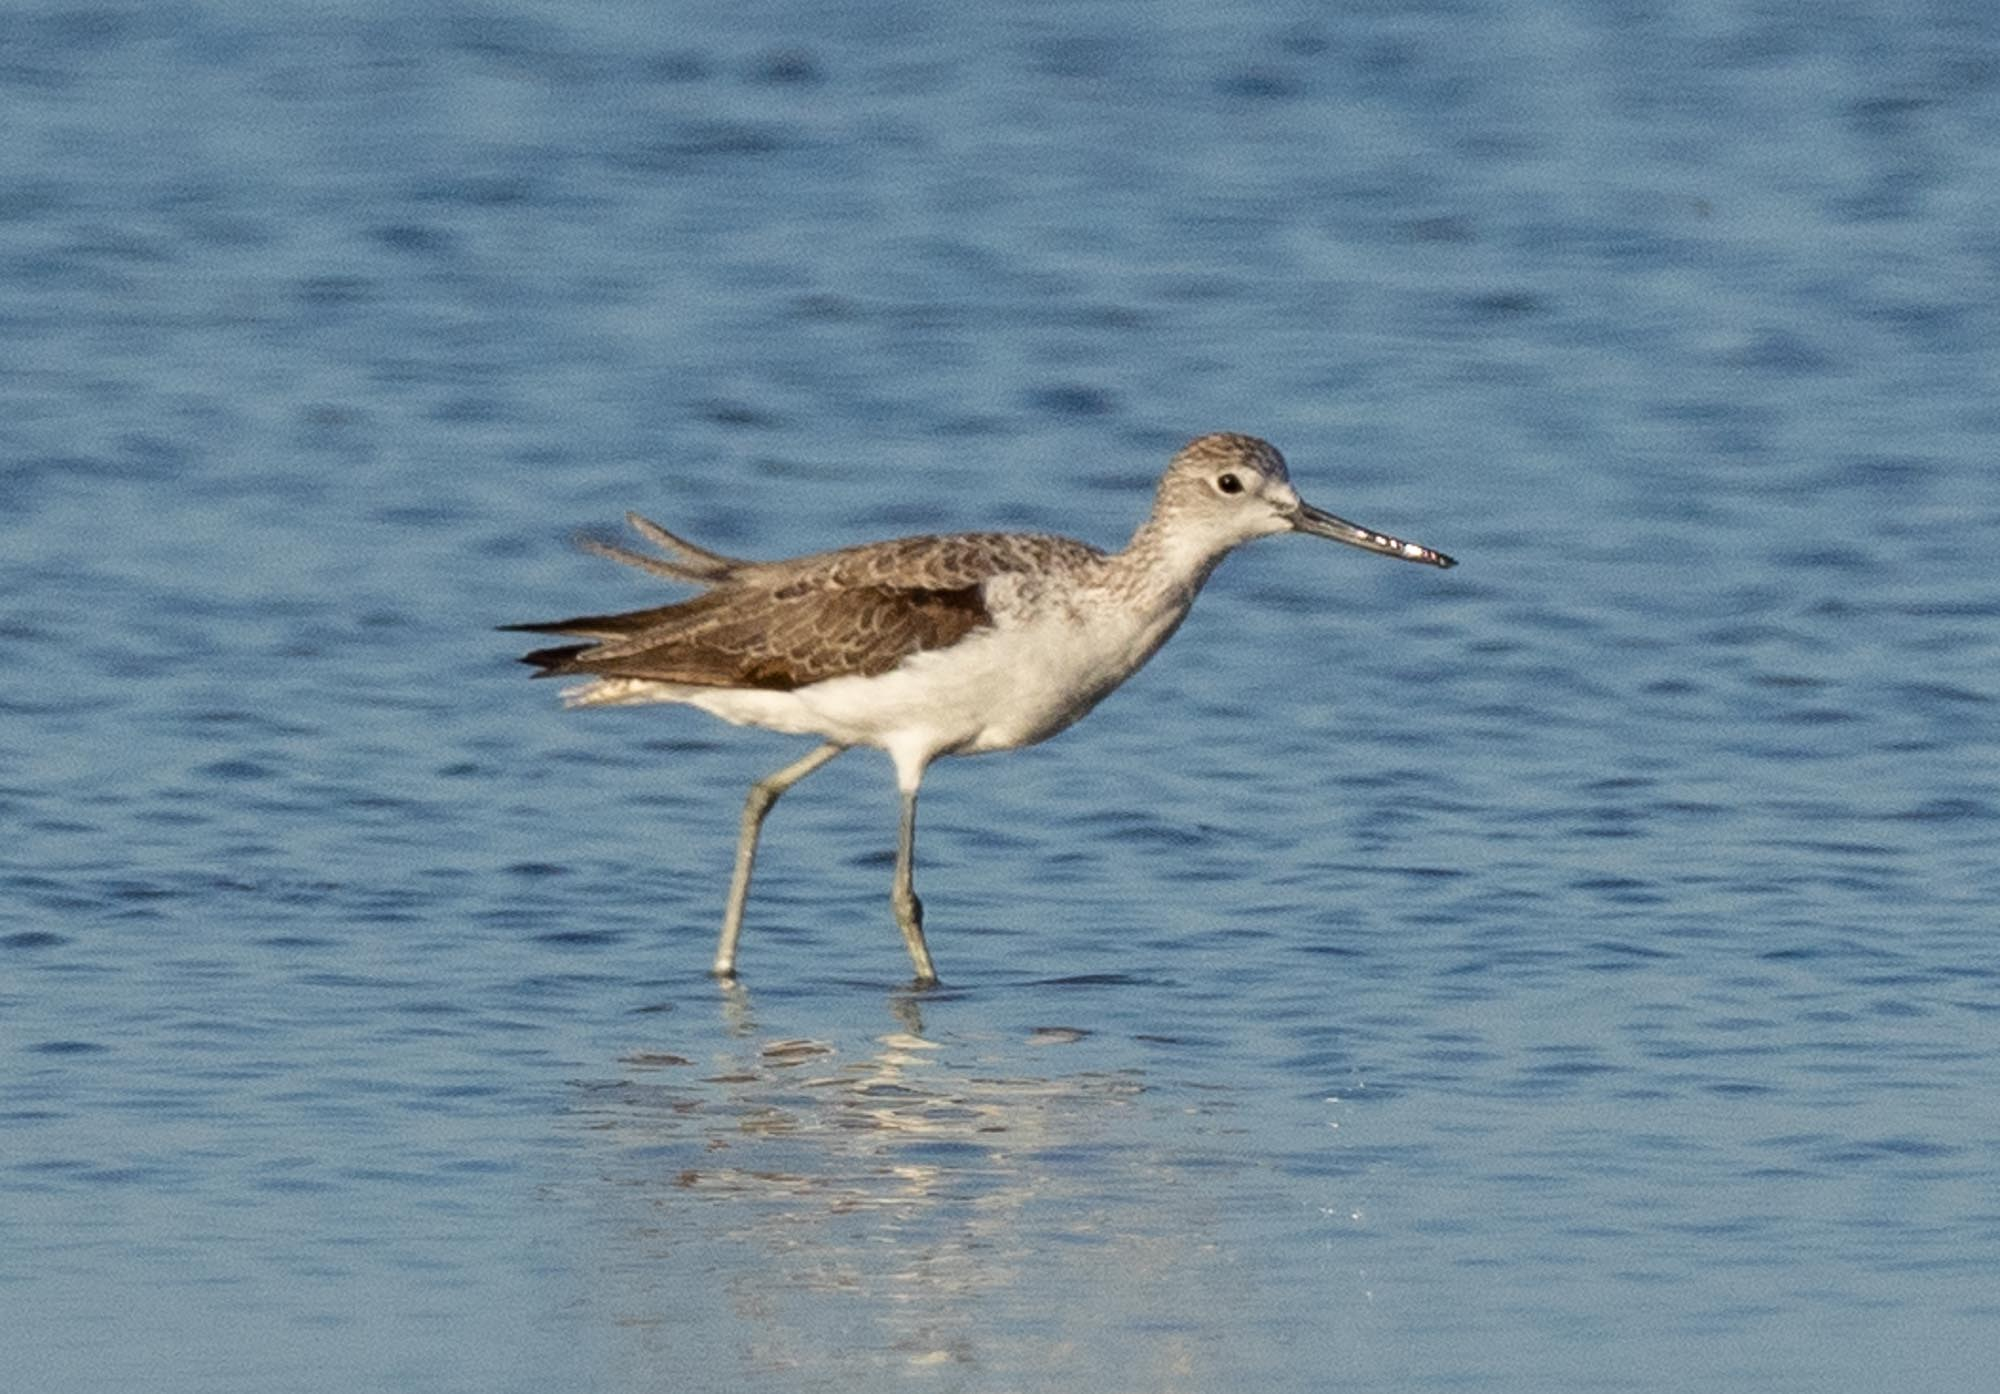 Common Greenshank … this is a juvenile, just arrived on its first visit to Australia from the breeding grounds in Siberia.